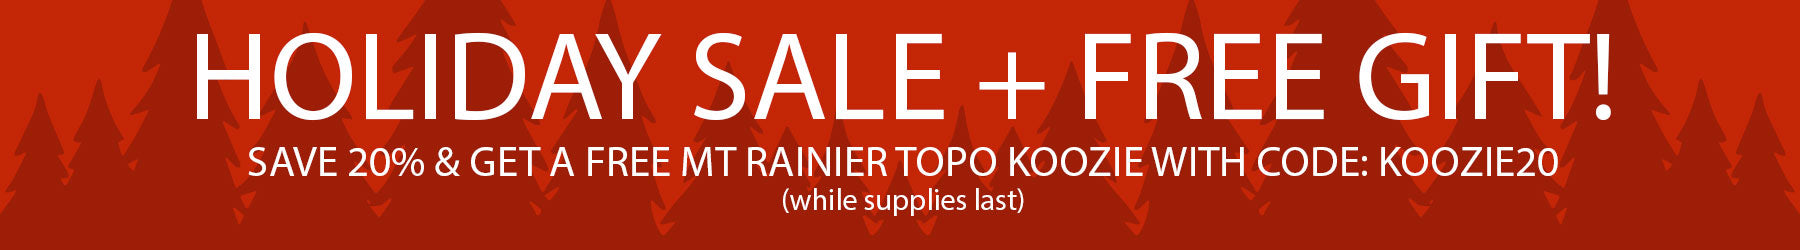 Save 20% and get a free Rainier Topo Koozie